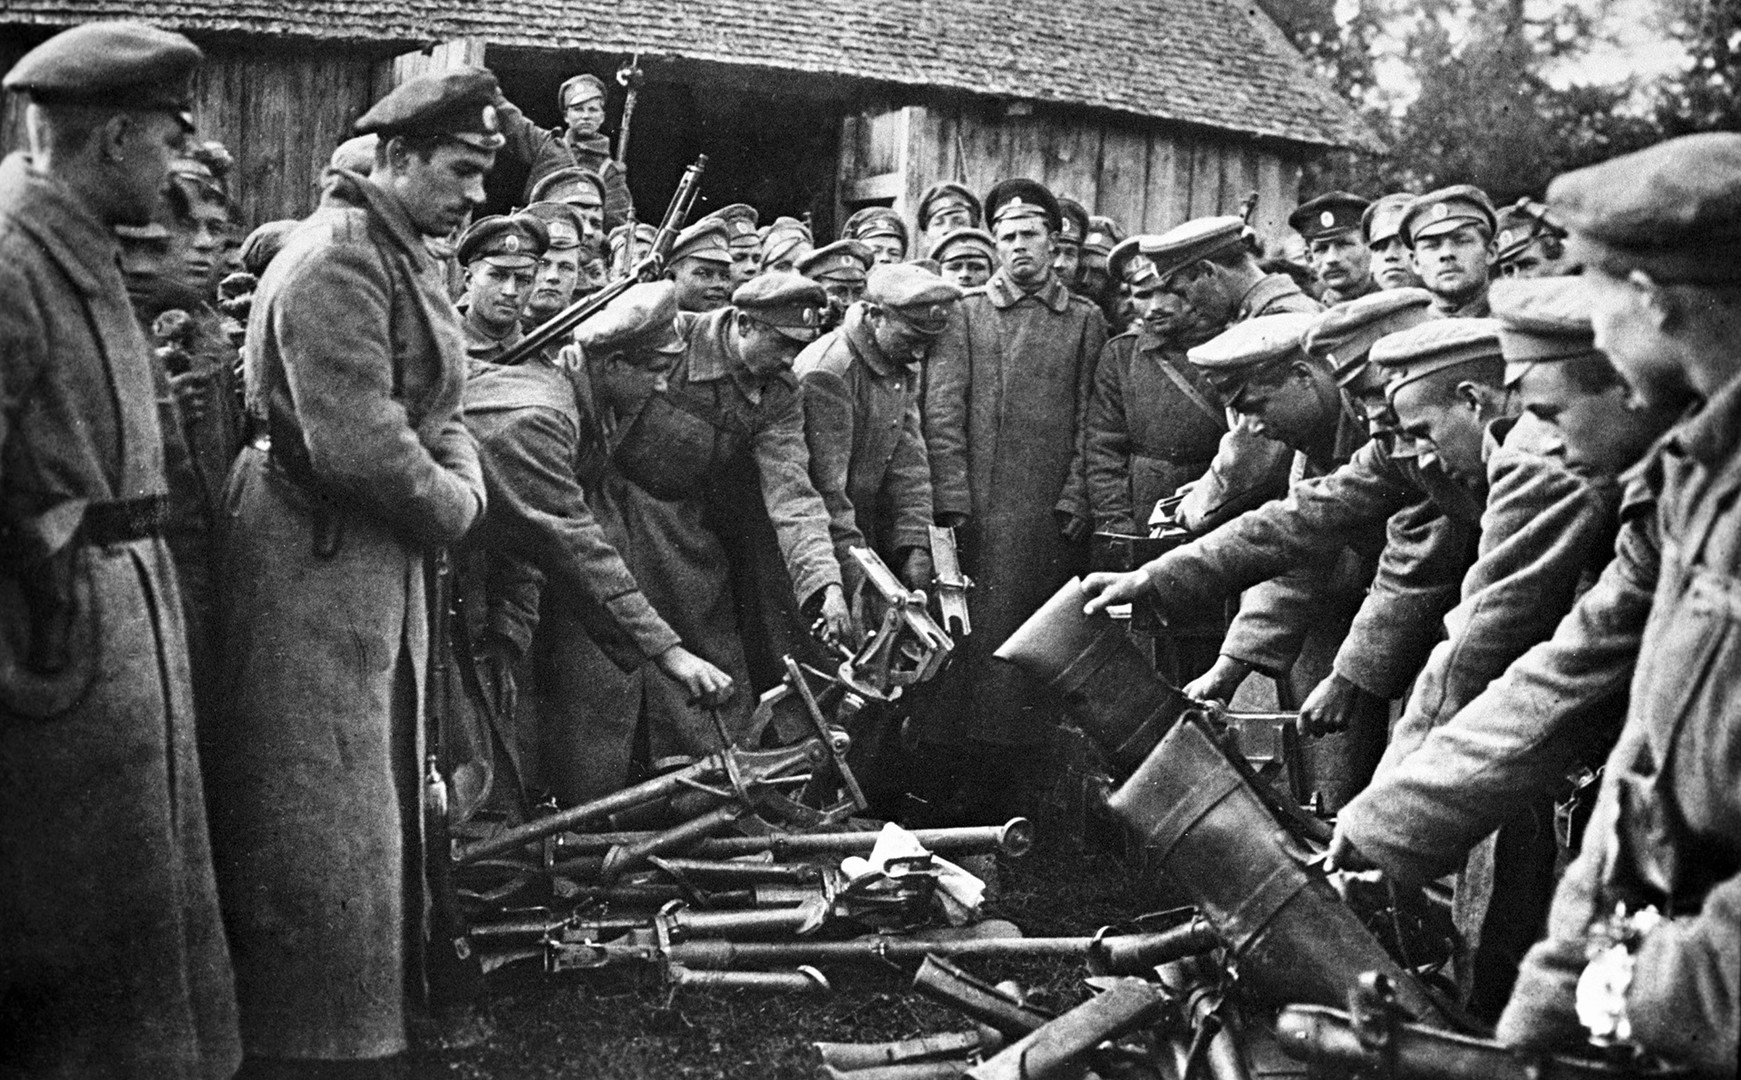 General Kornilov's army soldiers are surrendering their weapons.